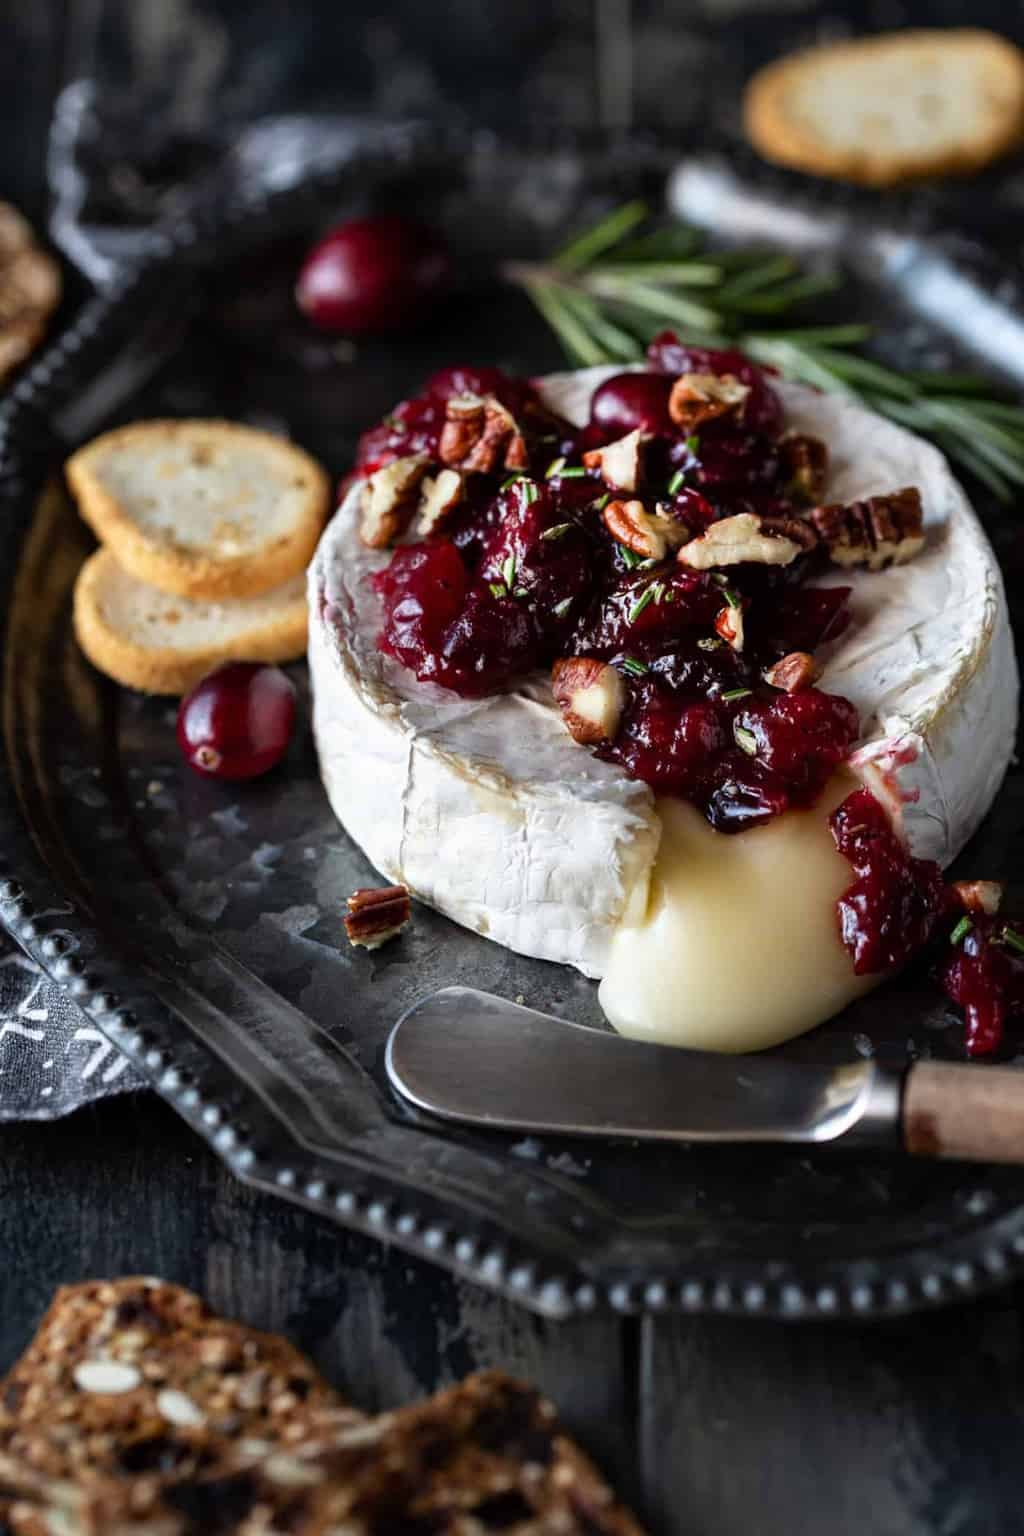 Wheel of baked brie with cranberries and pecans on a silver tray.